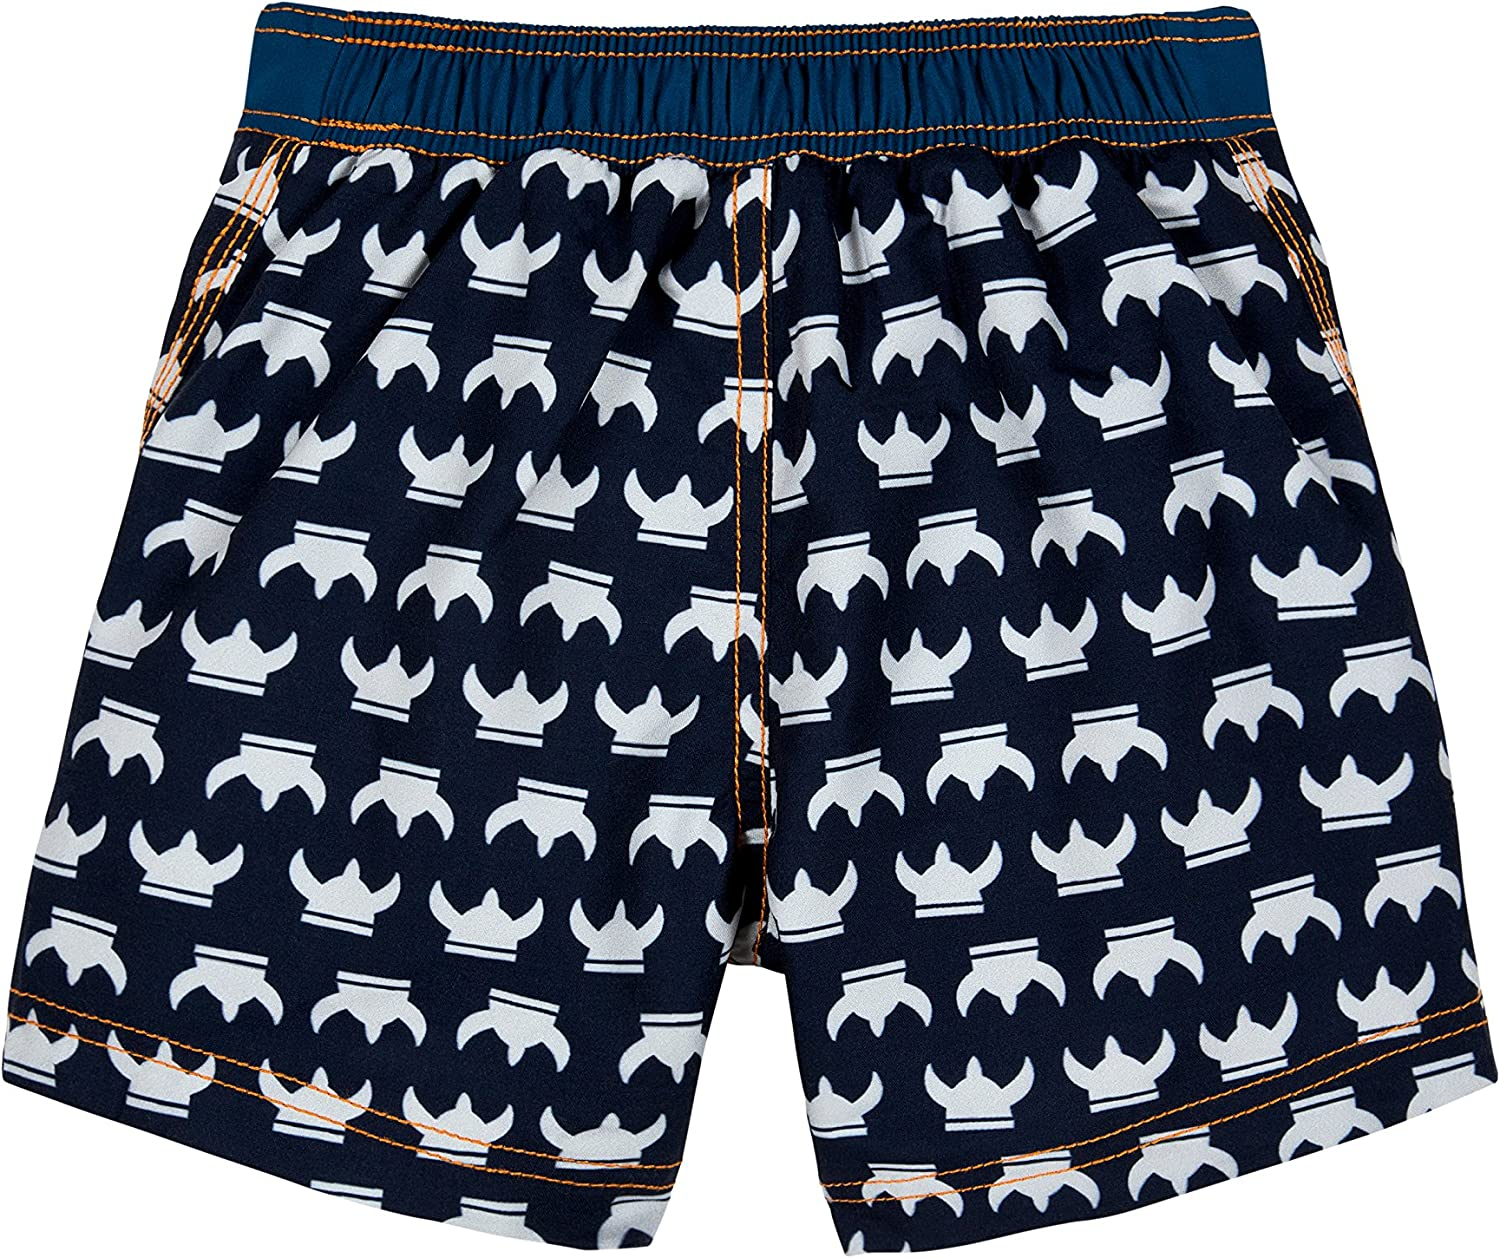 Lassig Splash and Fun Baby Board Shorts boys UV-protection 50+ M//12 Months blue whale